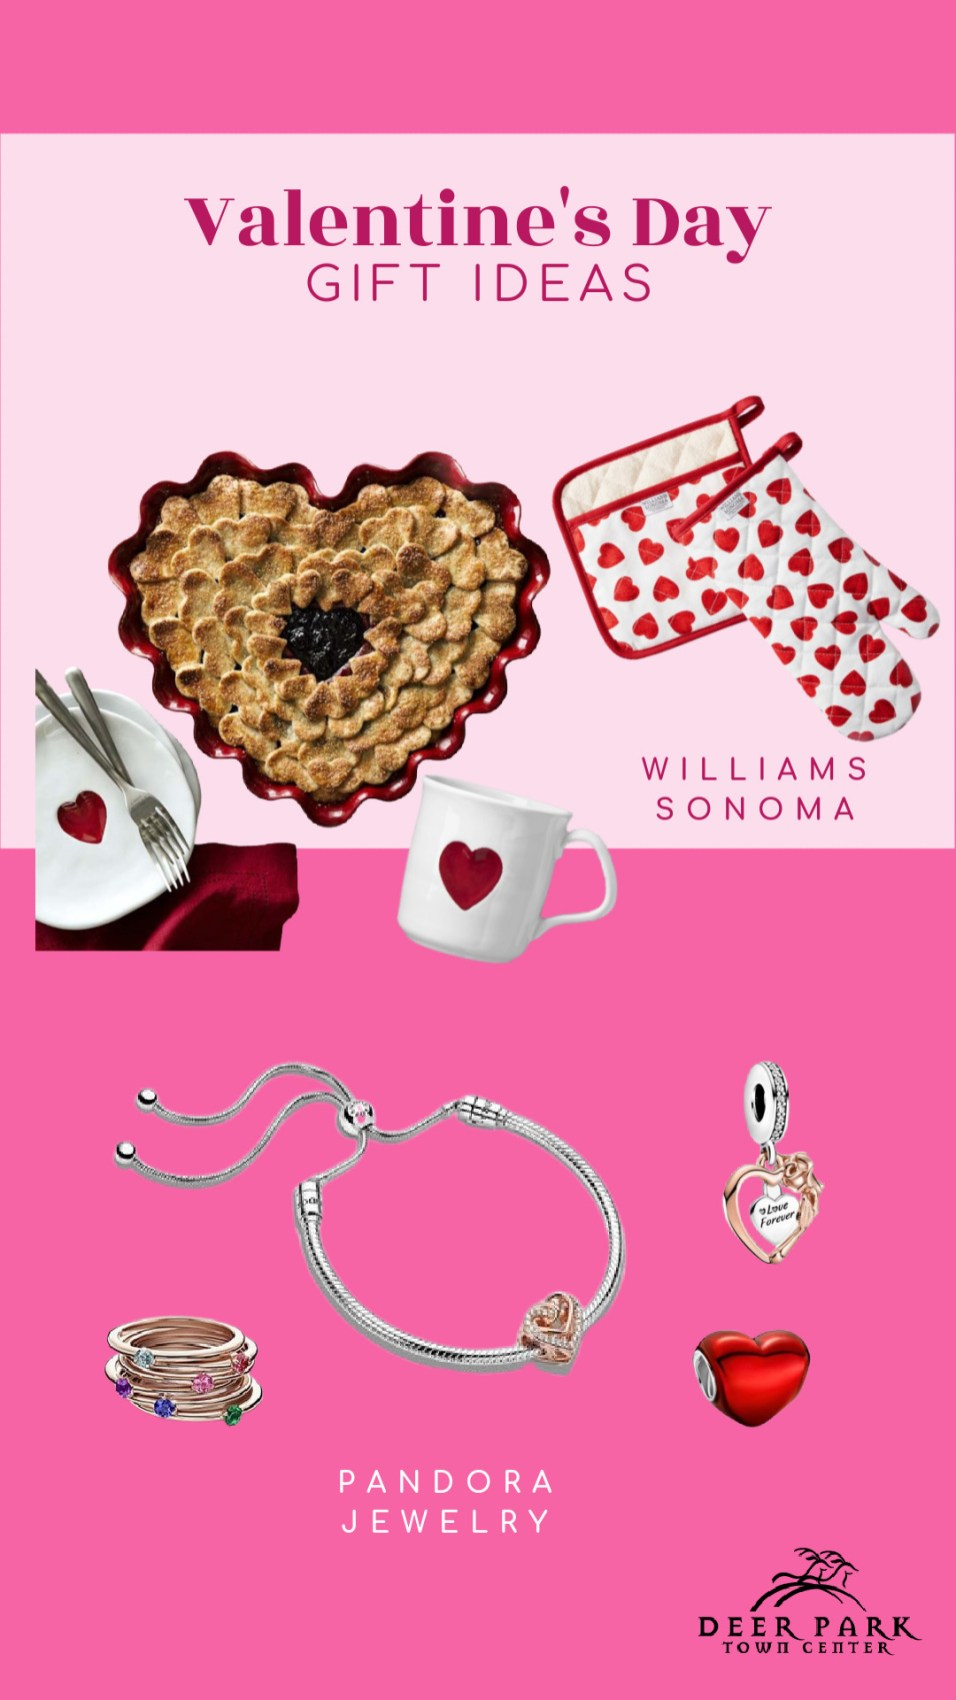 Deer Park Town Center - Valentine's Day Gifts 2021 - 3